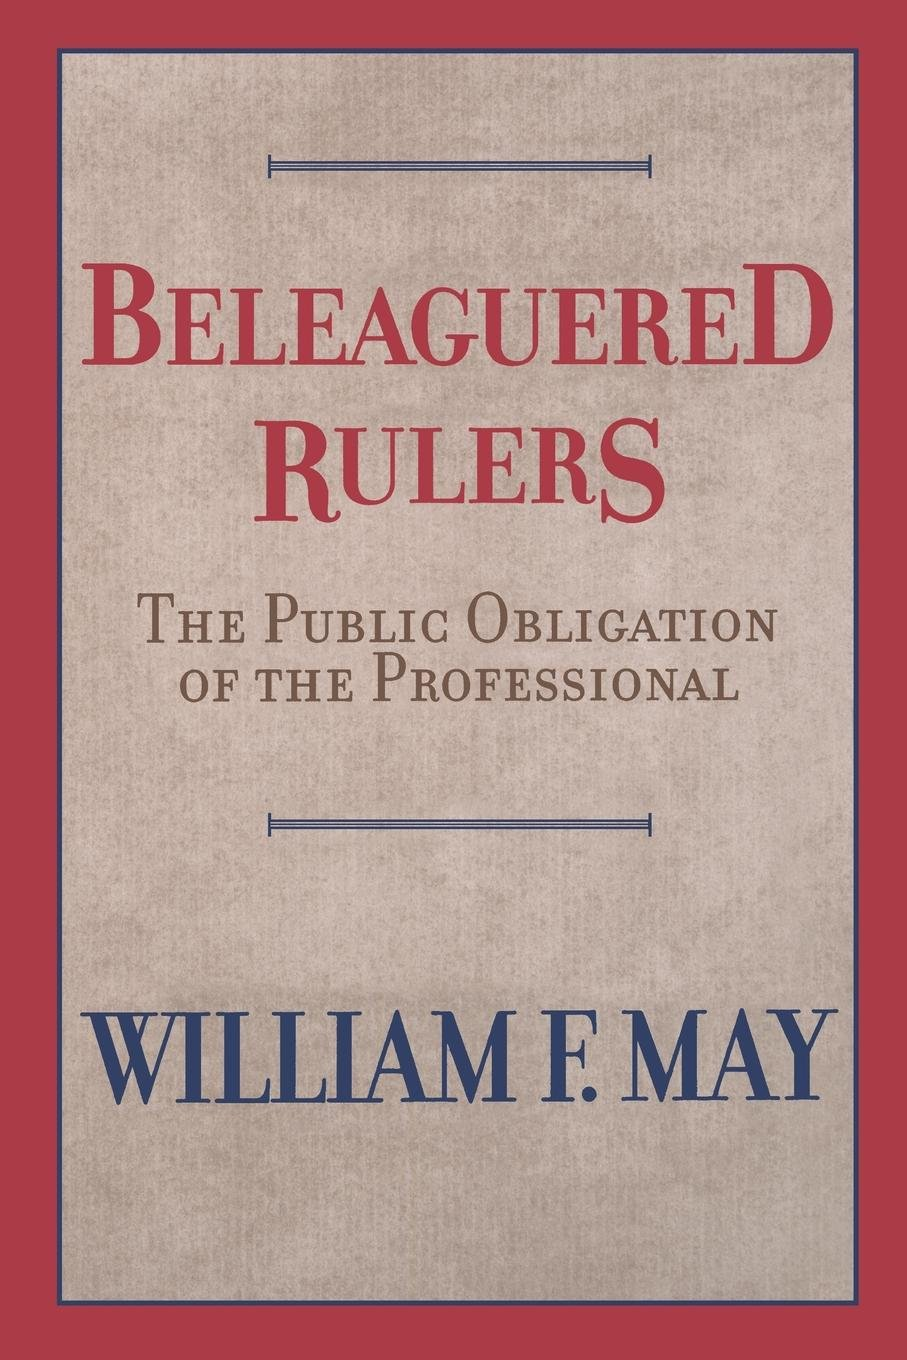 Download Beleaguered Rulers: The Public Obligation of the Professional PDF Text fb2 book